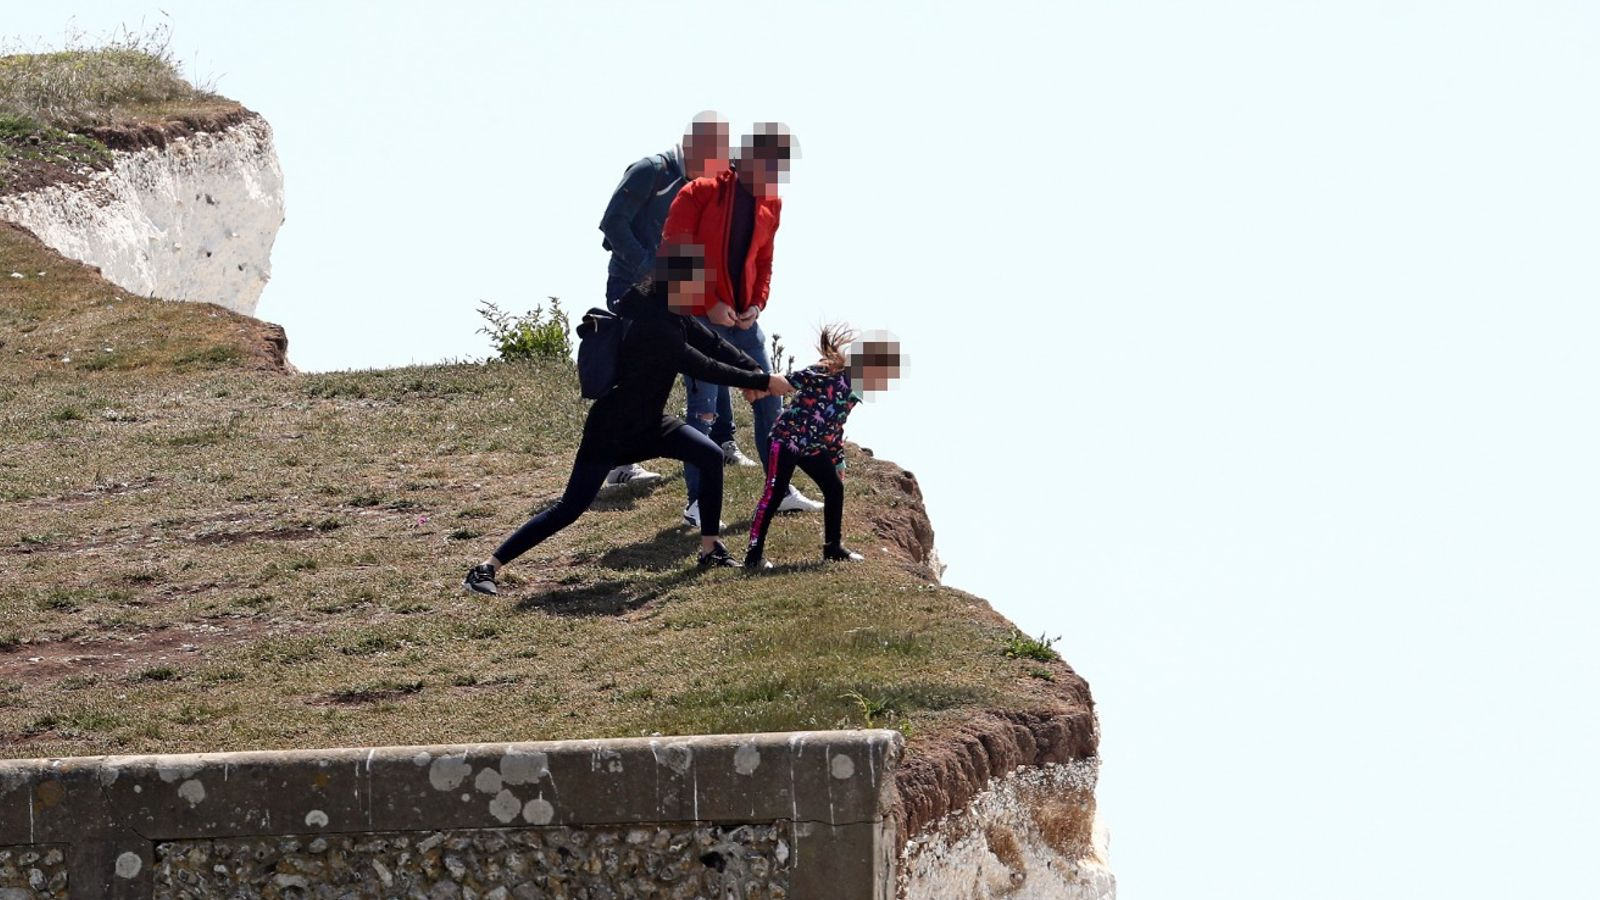 Birling Gap: Warning after young girl pictured being pulled from cliff edge